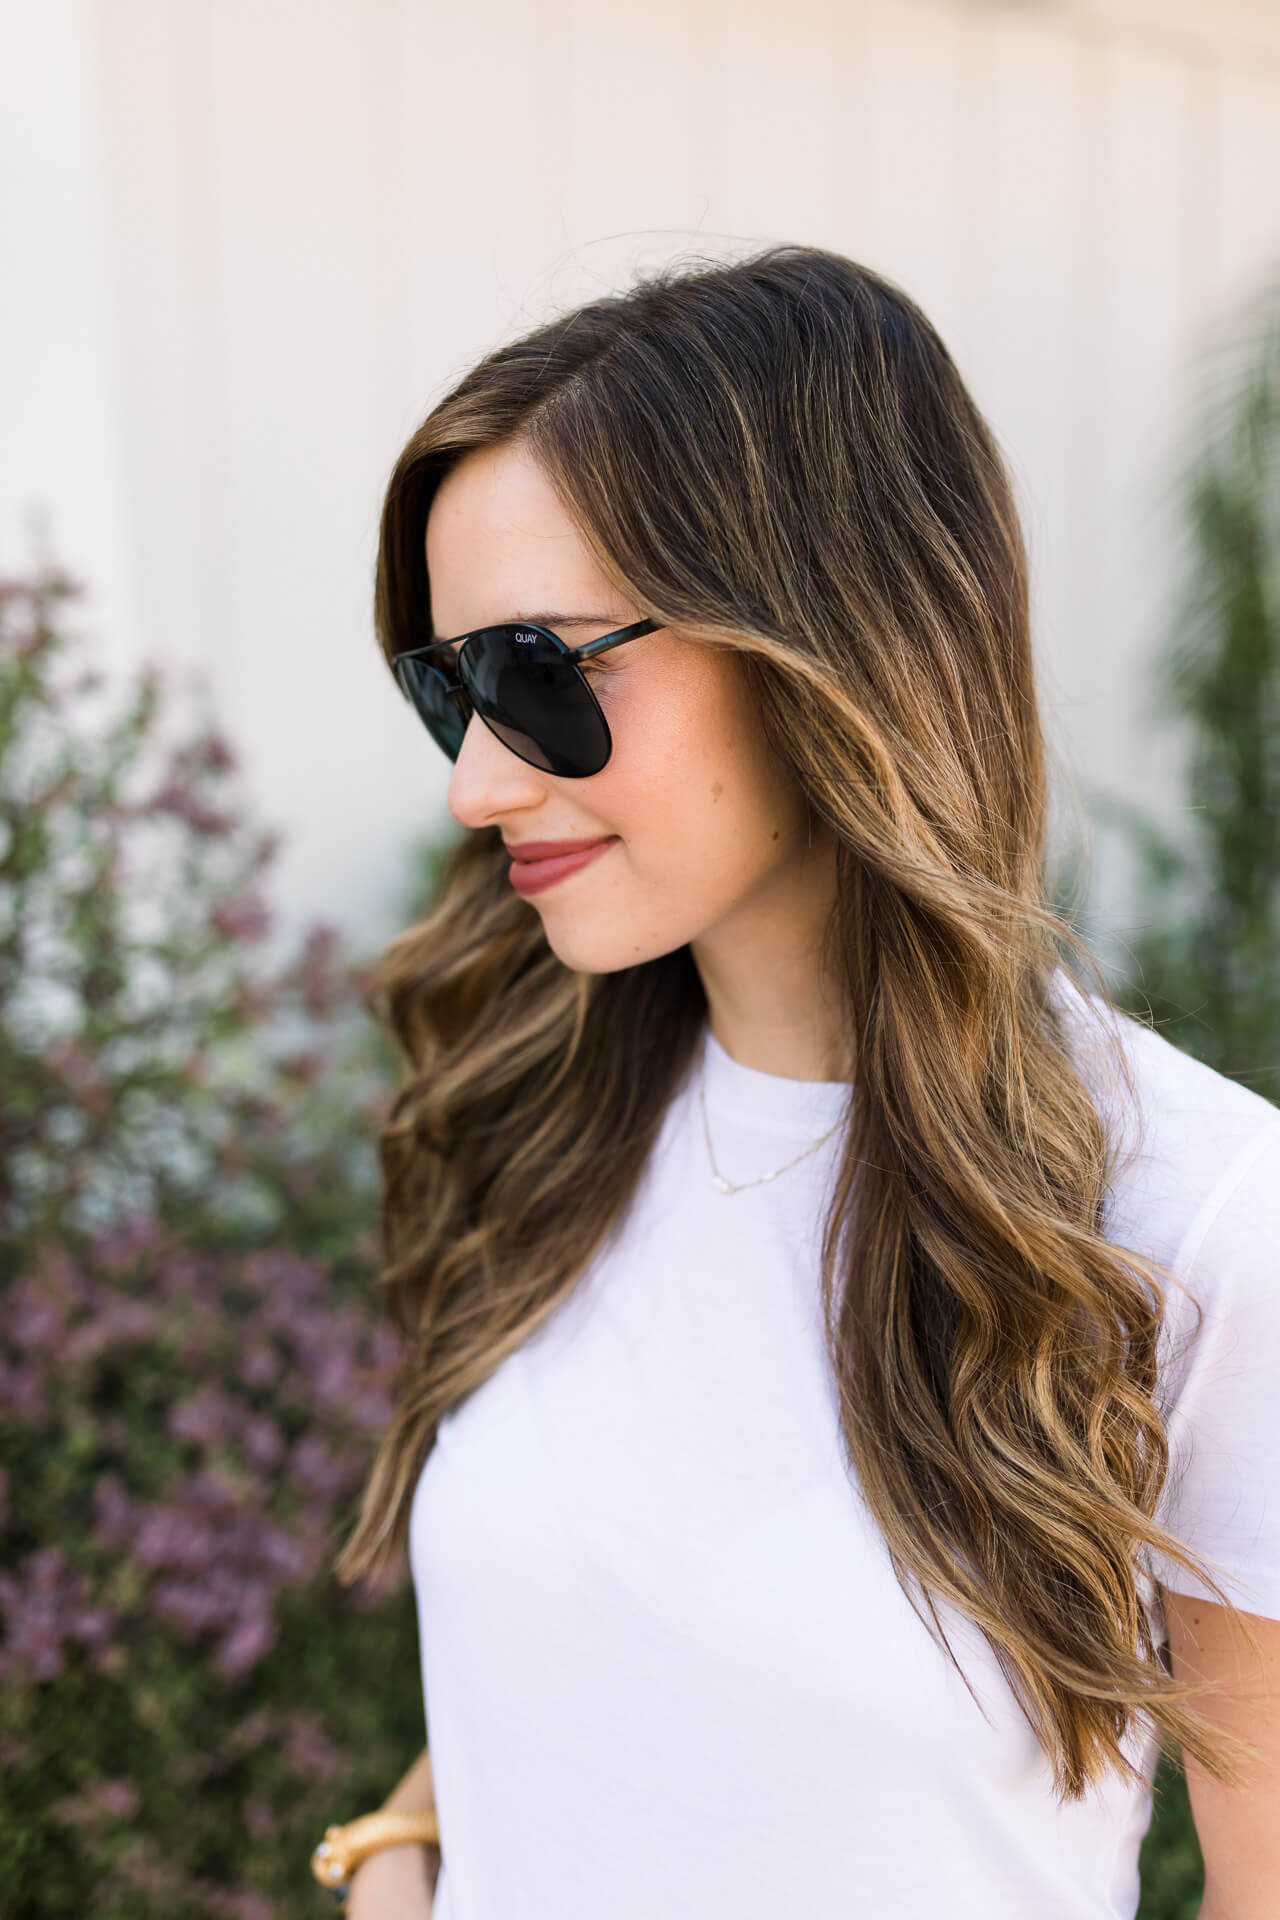 classic aviator sunglasses with white t-shirt - M Loves M Los Angeles and Orange County fashion and lifestyle blogger @marmar